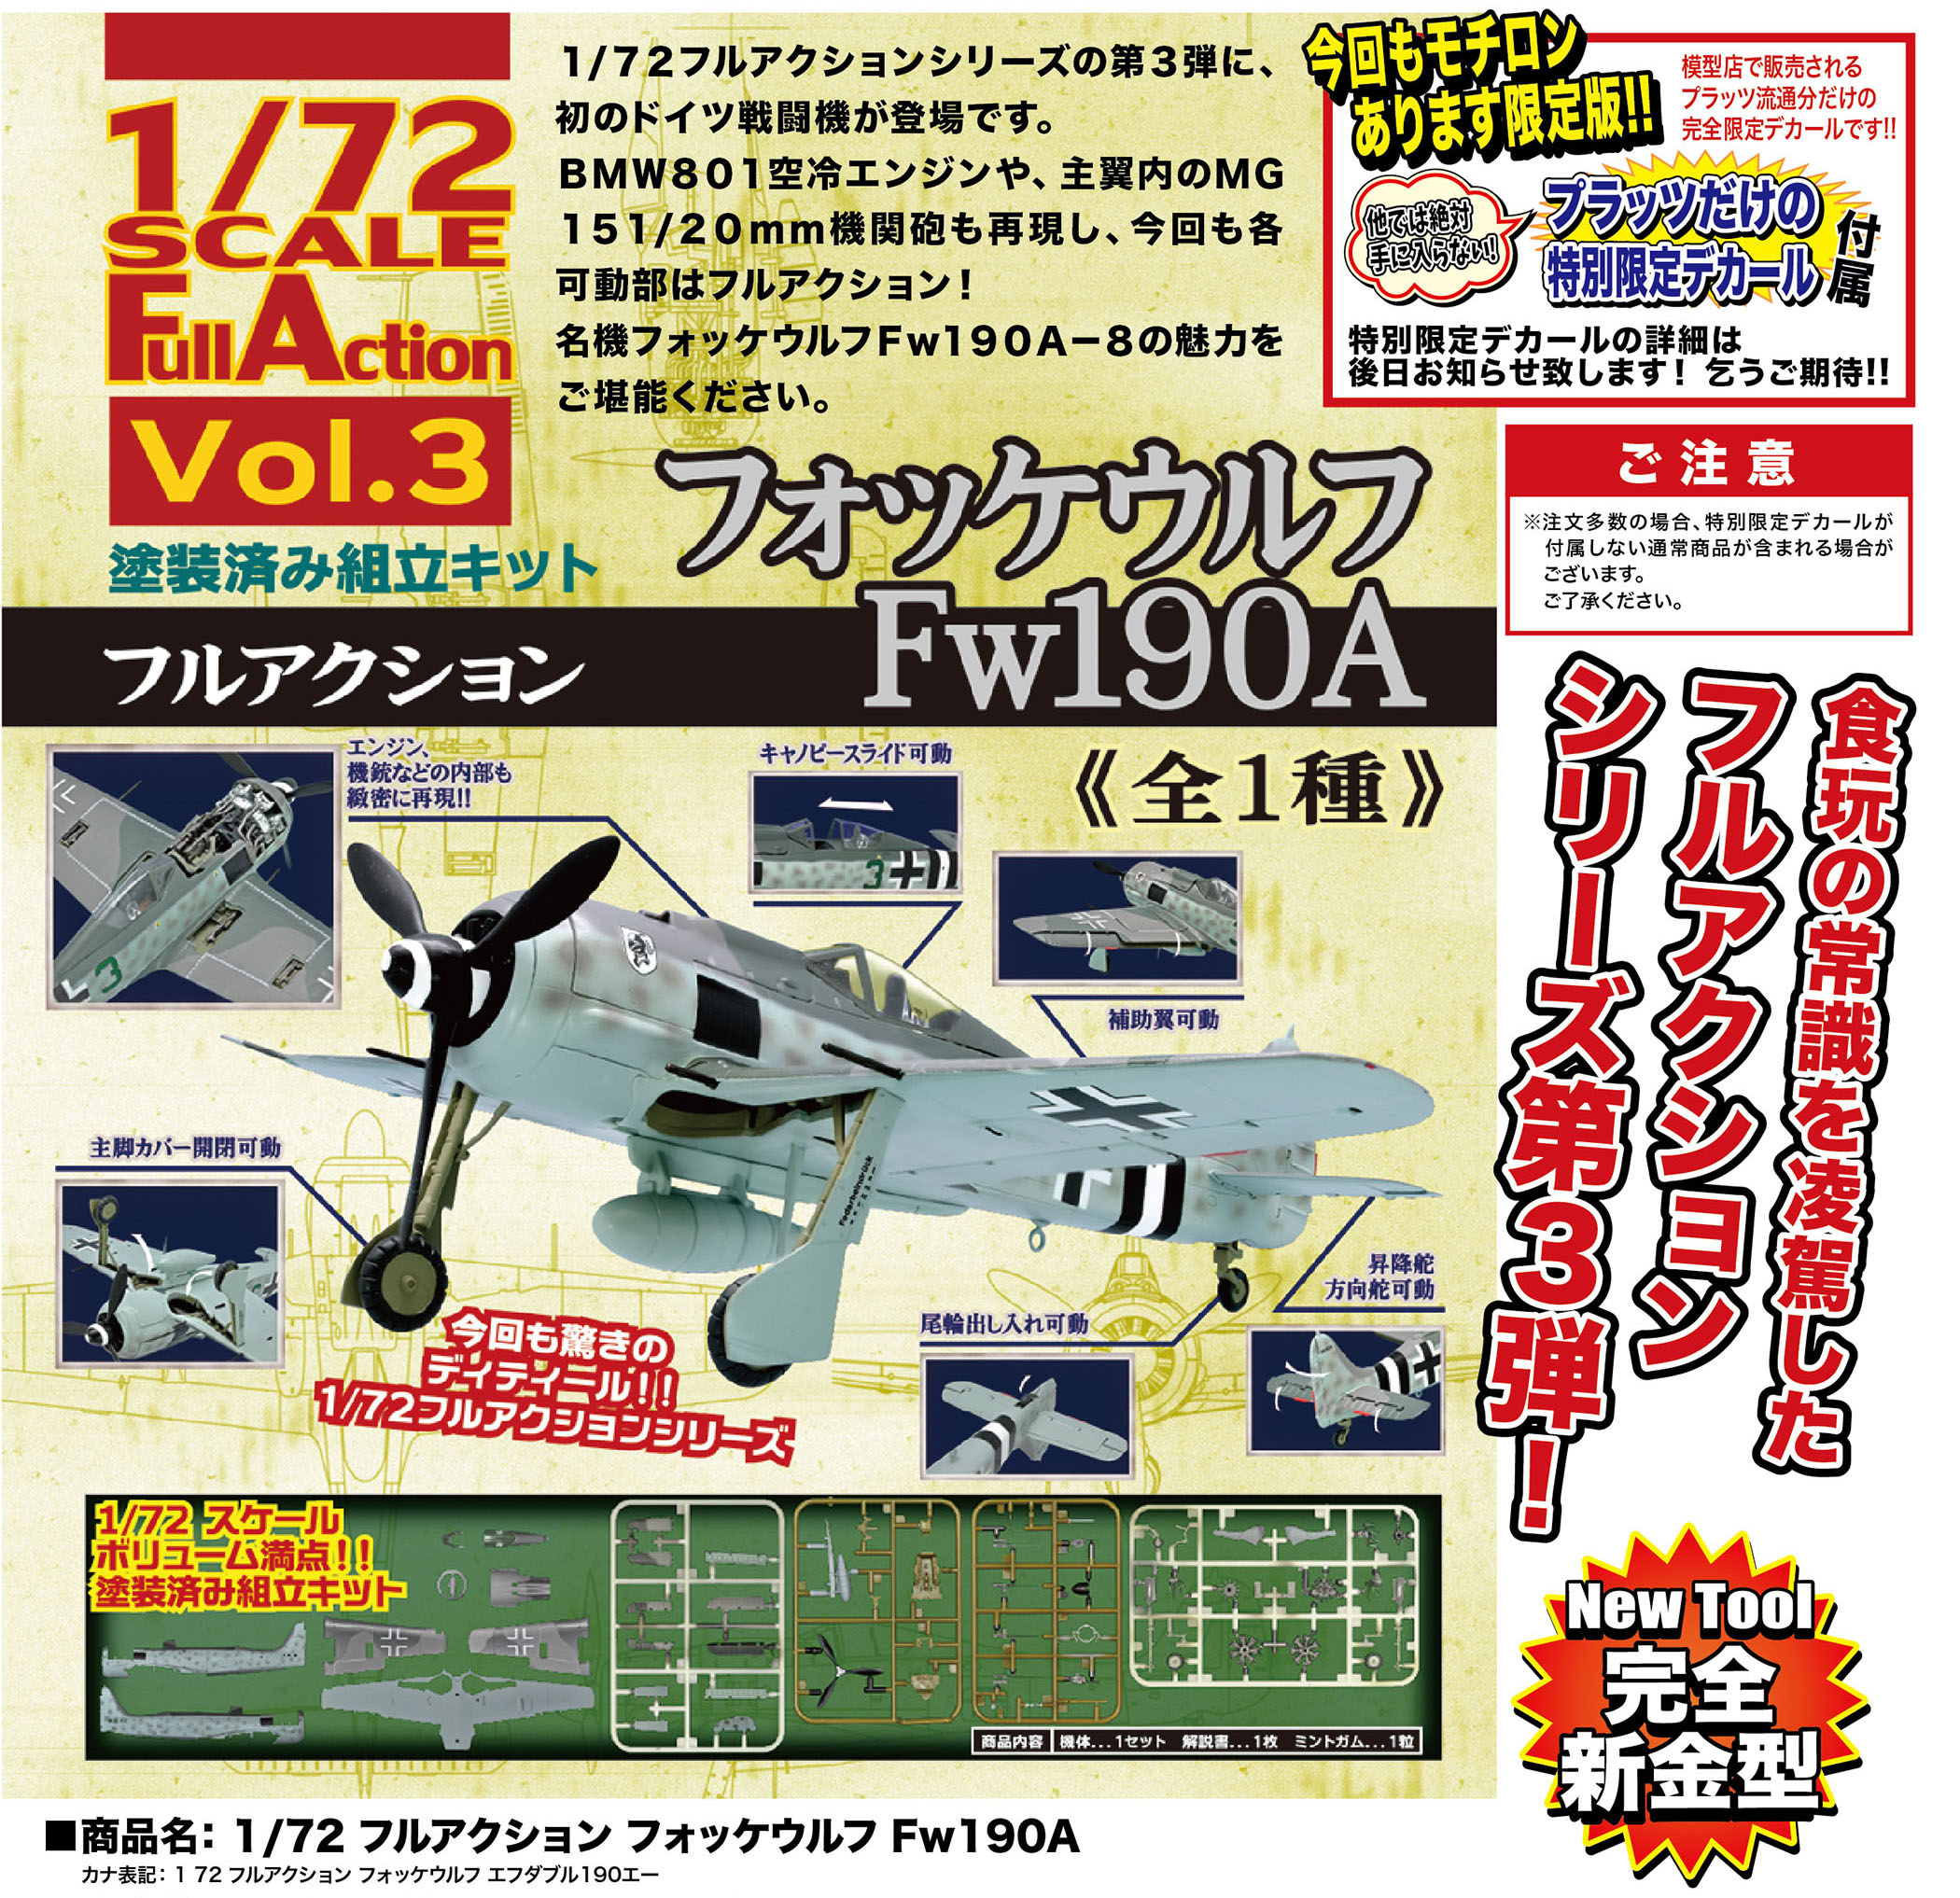 【食玩】1/72 Full Action Focke Wulf Fw190A